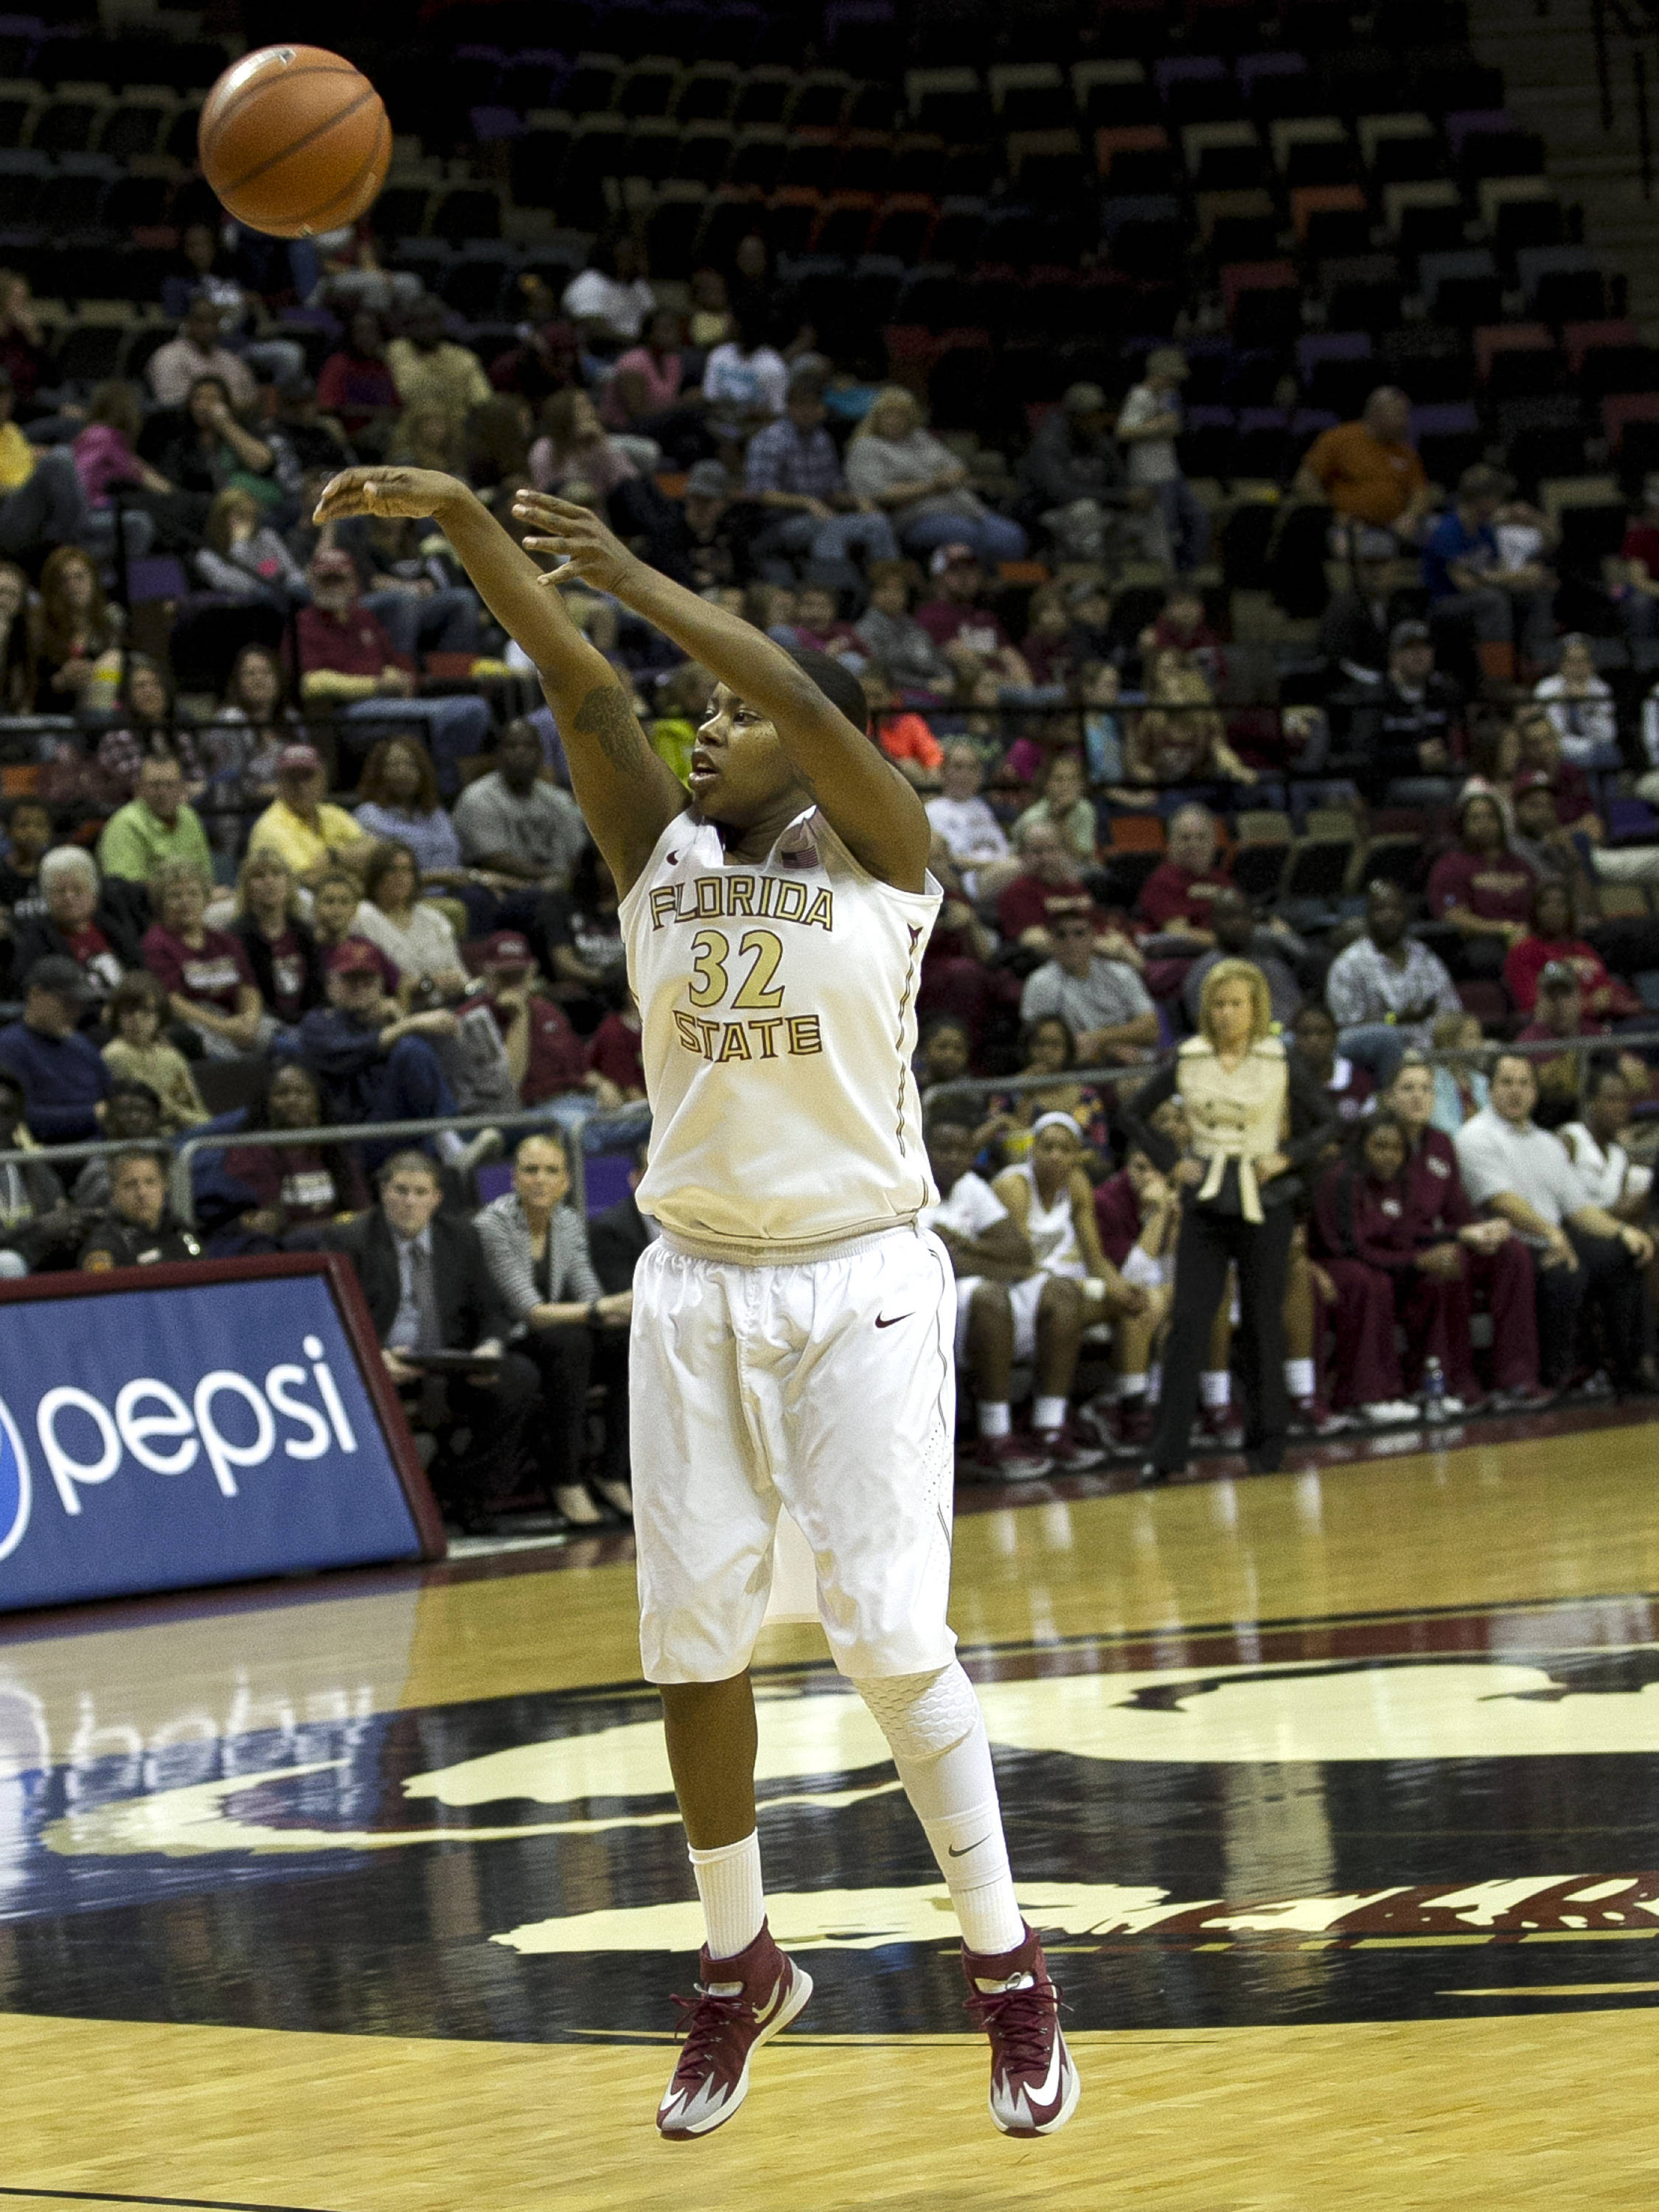 Lauren Coleman (32) with a long three, FSU vs Miami, 2-16-14, (Photo's by Steve Musco)